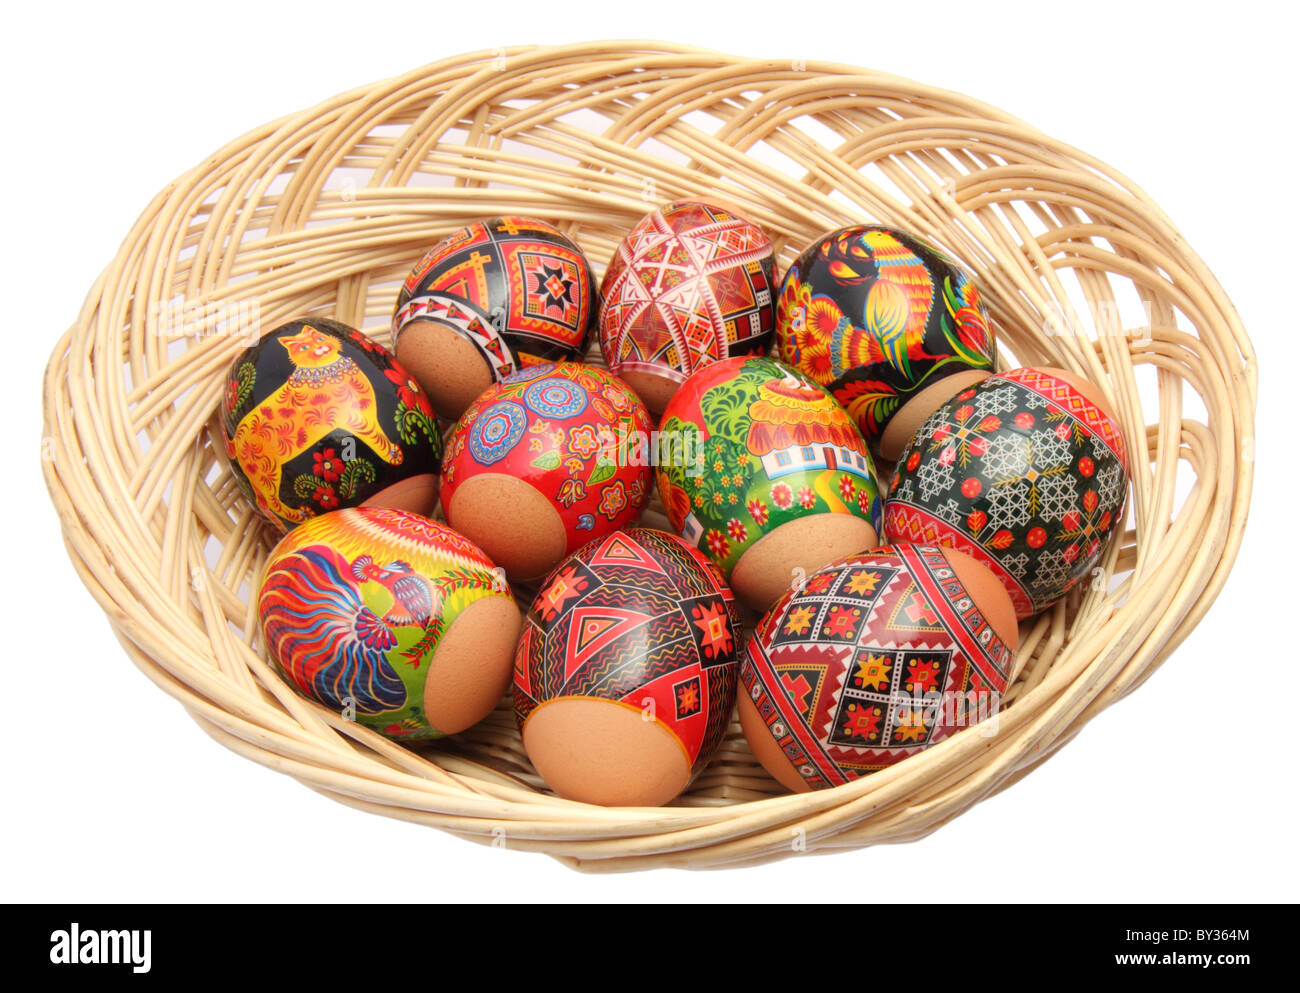 Basket with multicolored easter eggs on the white background - Stock Image